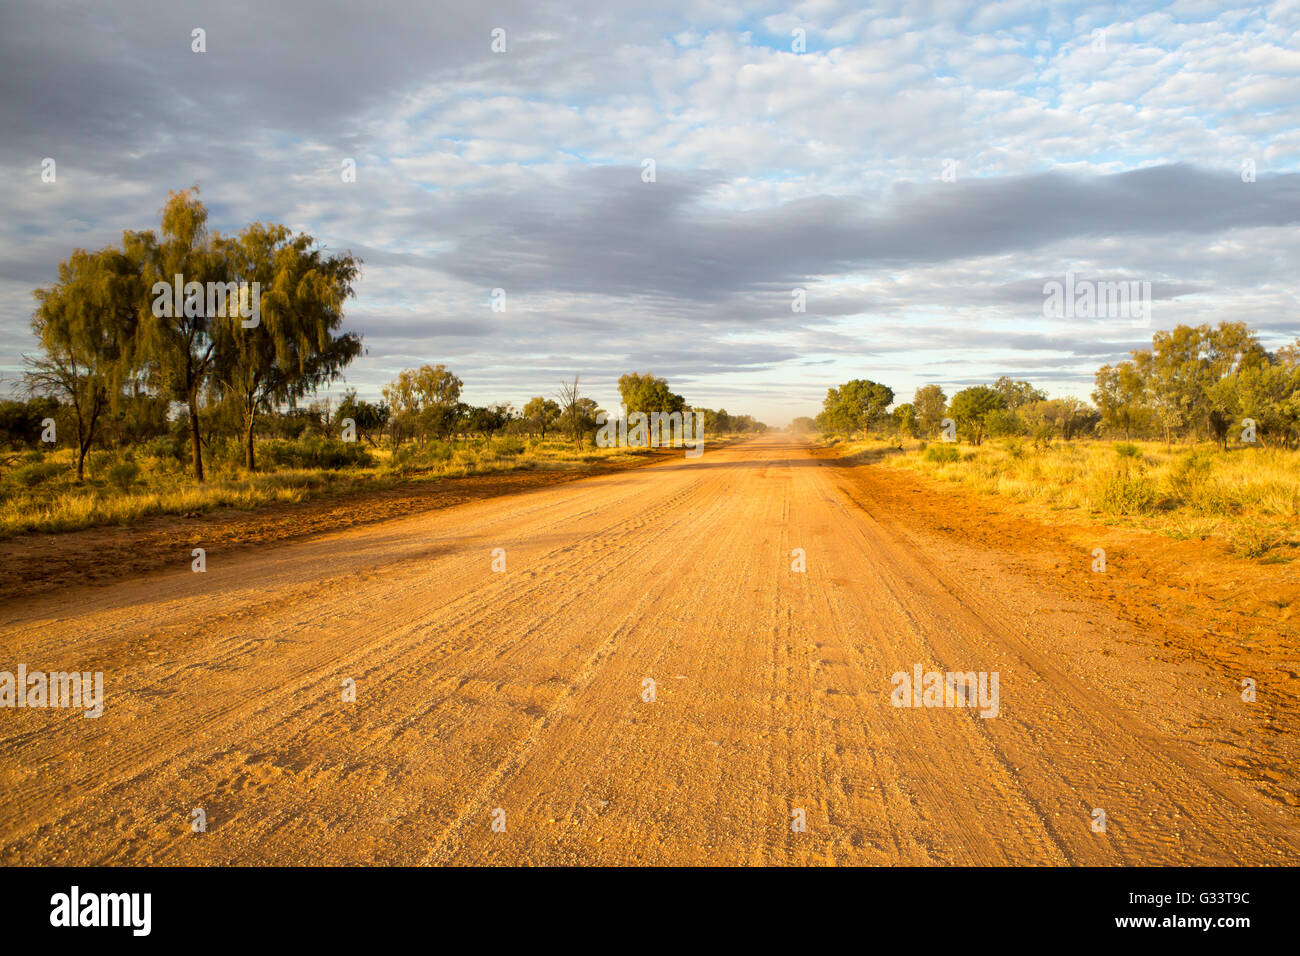 Plenty Hwy near Gemtree in the Northern Territory, Australia - Stock Image